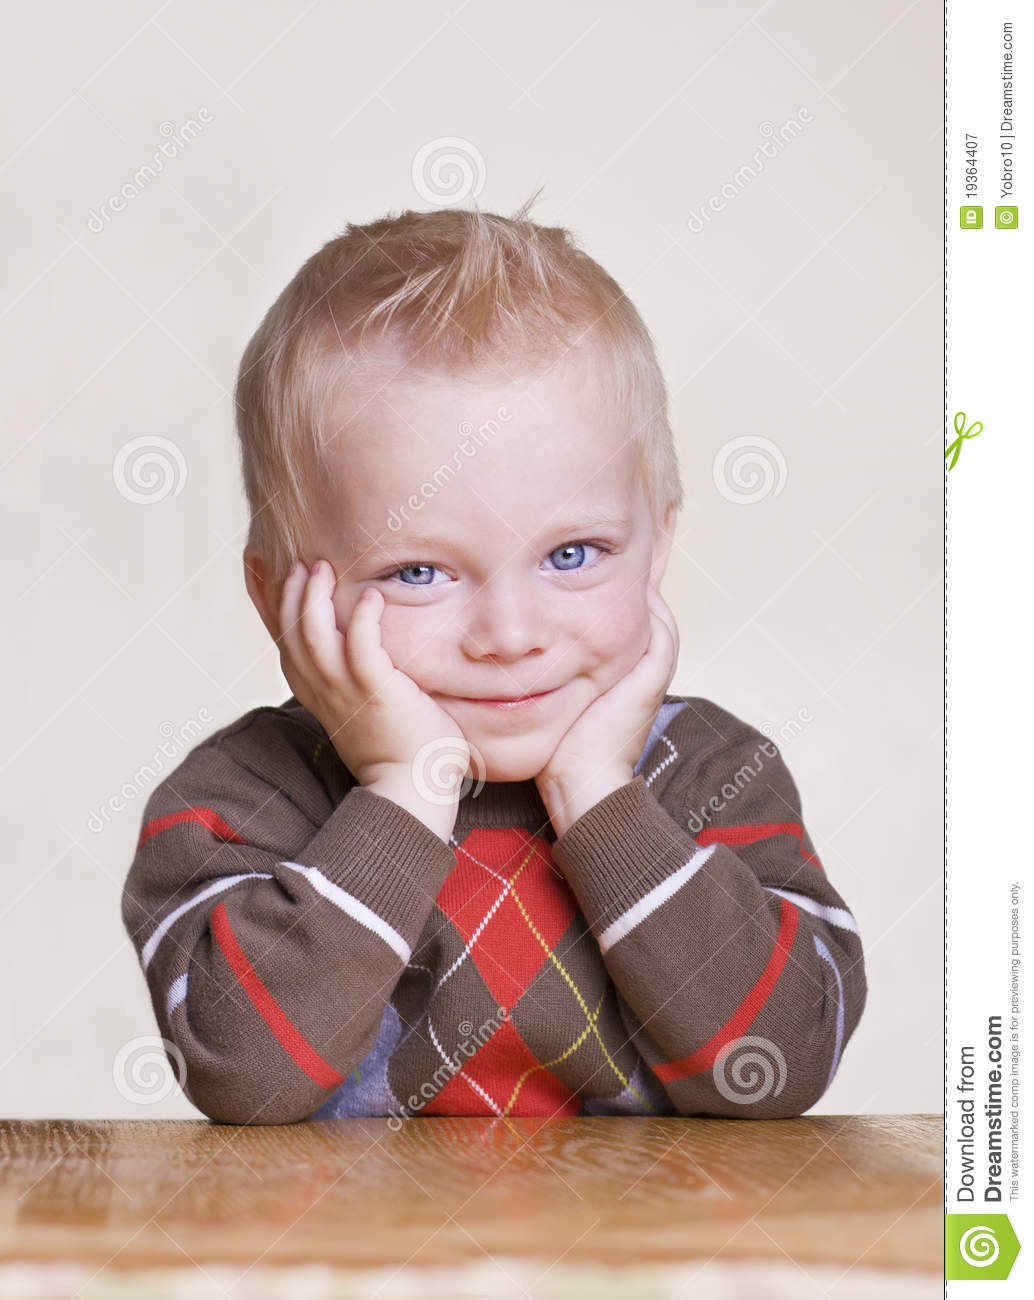 4 Year Boy Bedroom Decorating Ideas: Cute Little Boy Portrait With Bored Expression Stock Image